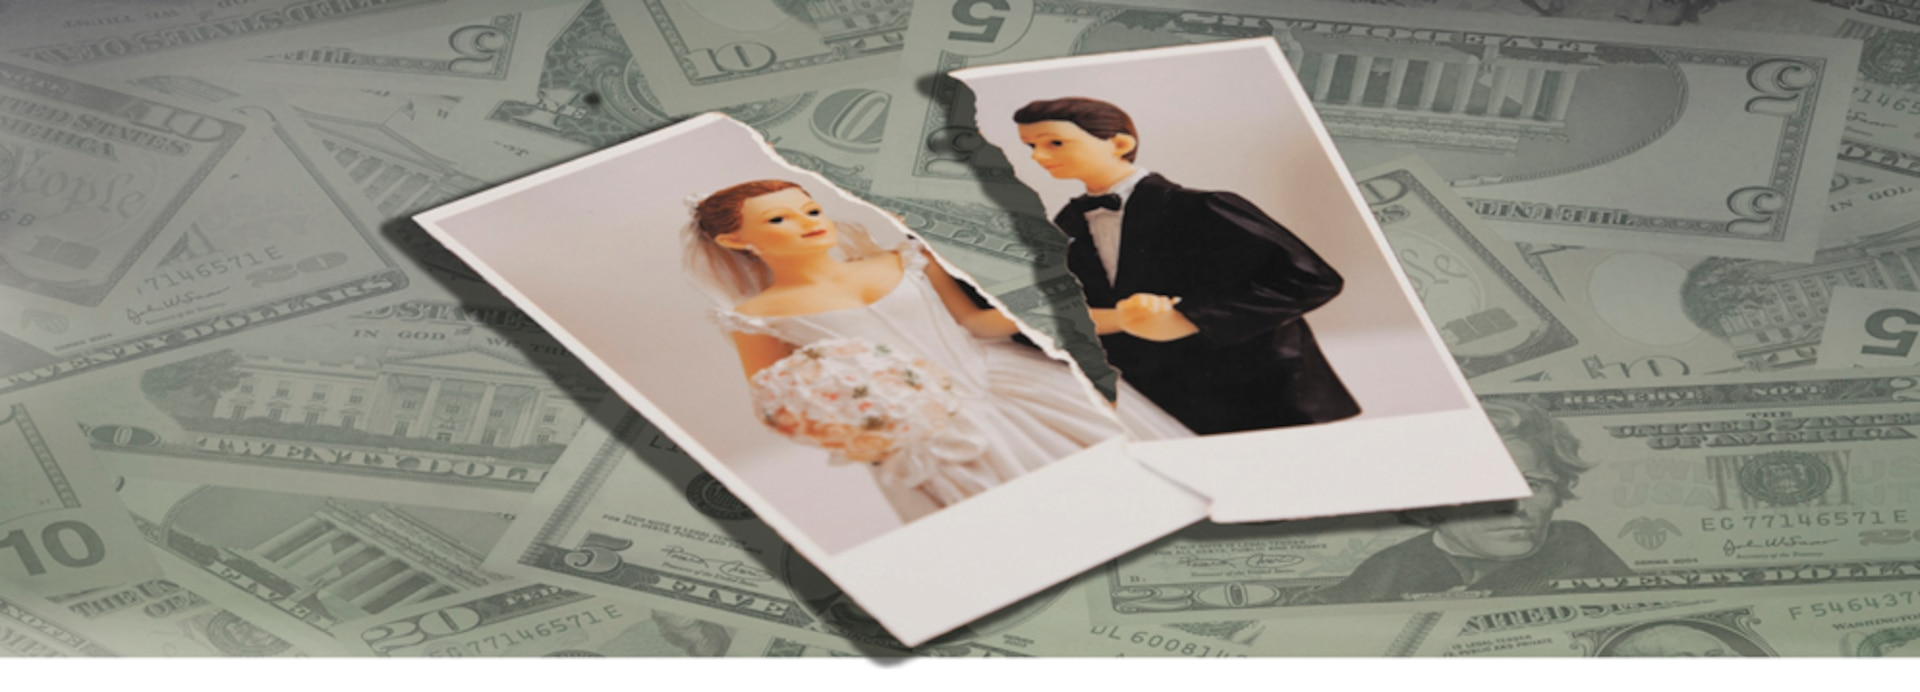 In 2011, the Texas Legislature expanded Chapter 8 of the Texas Family Code by increasing the amount of post-divorce support that a spouse may be entitled to receive from the other spouse and extending the length of time that he or she may receive that support. (U.S. Air Force photo illustration by Dorothy Lonas/Released)